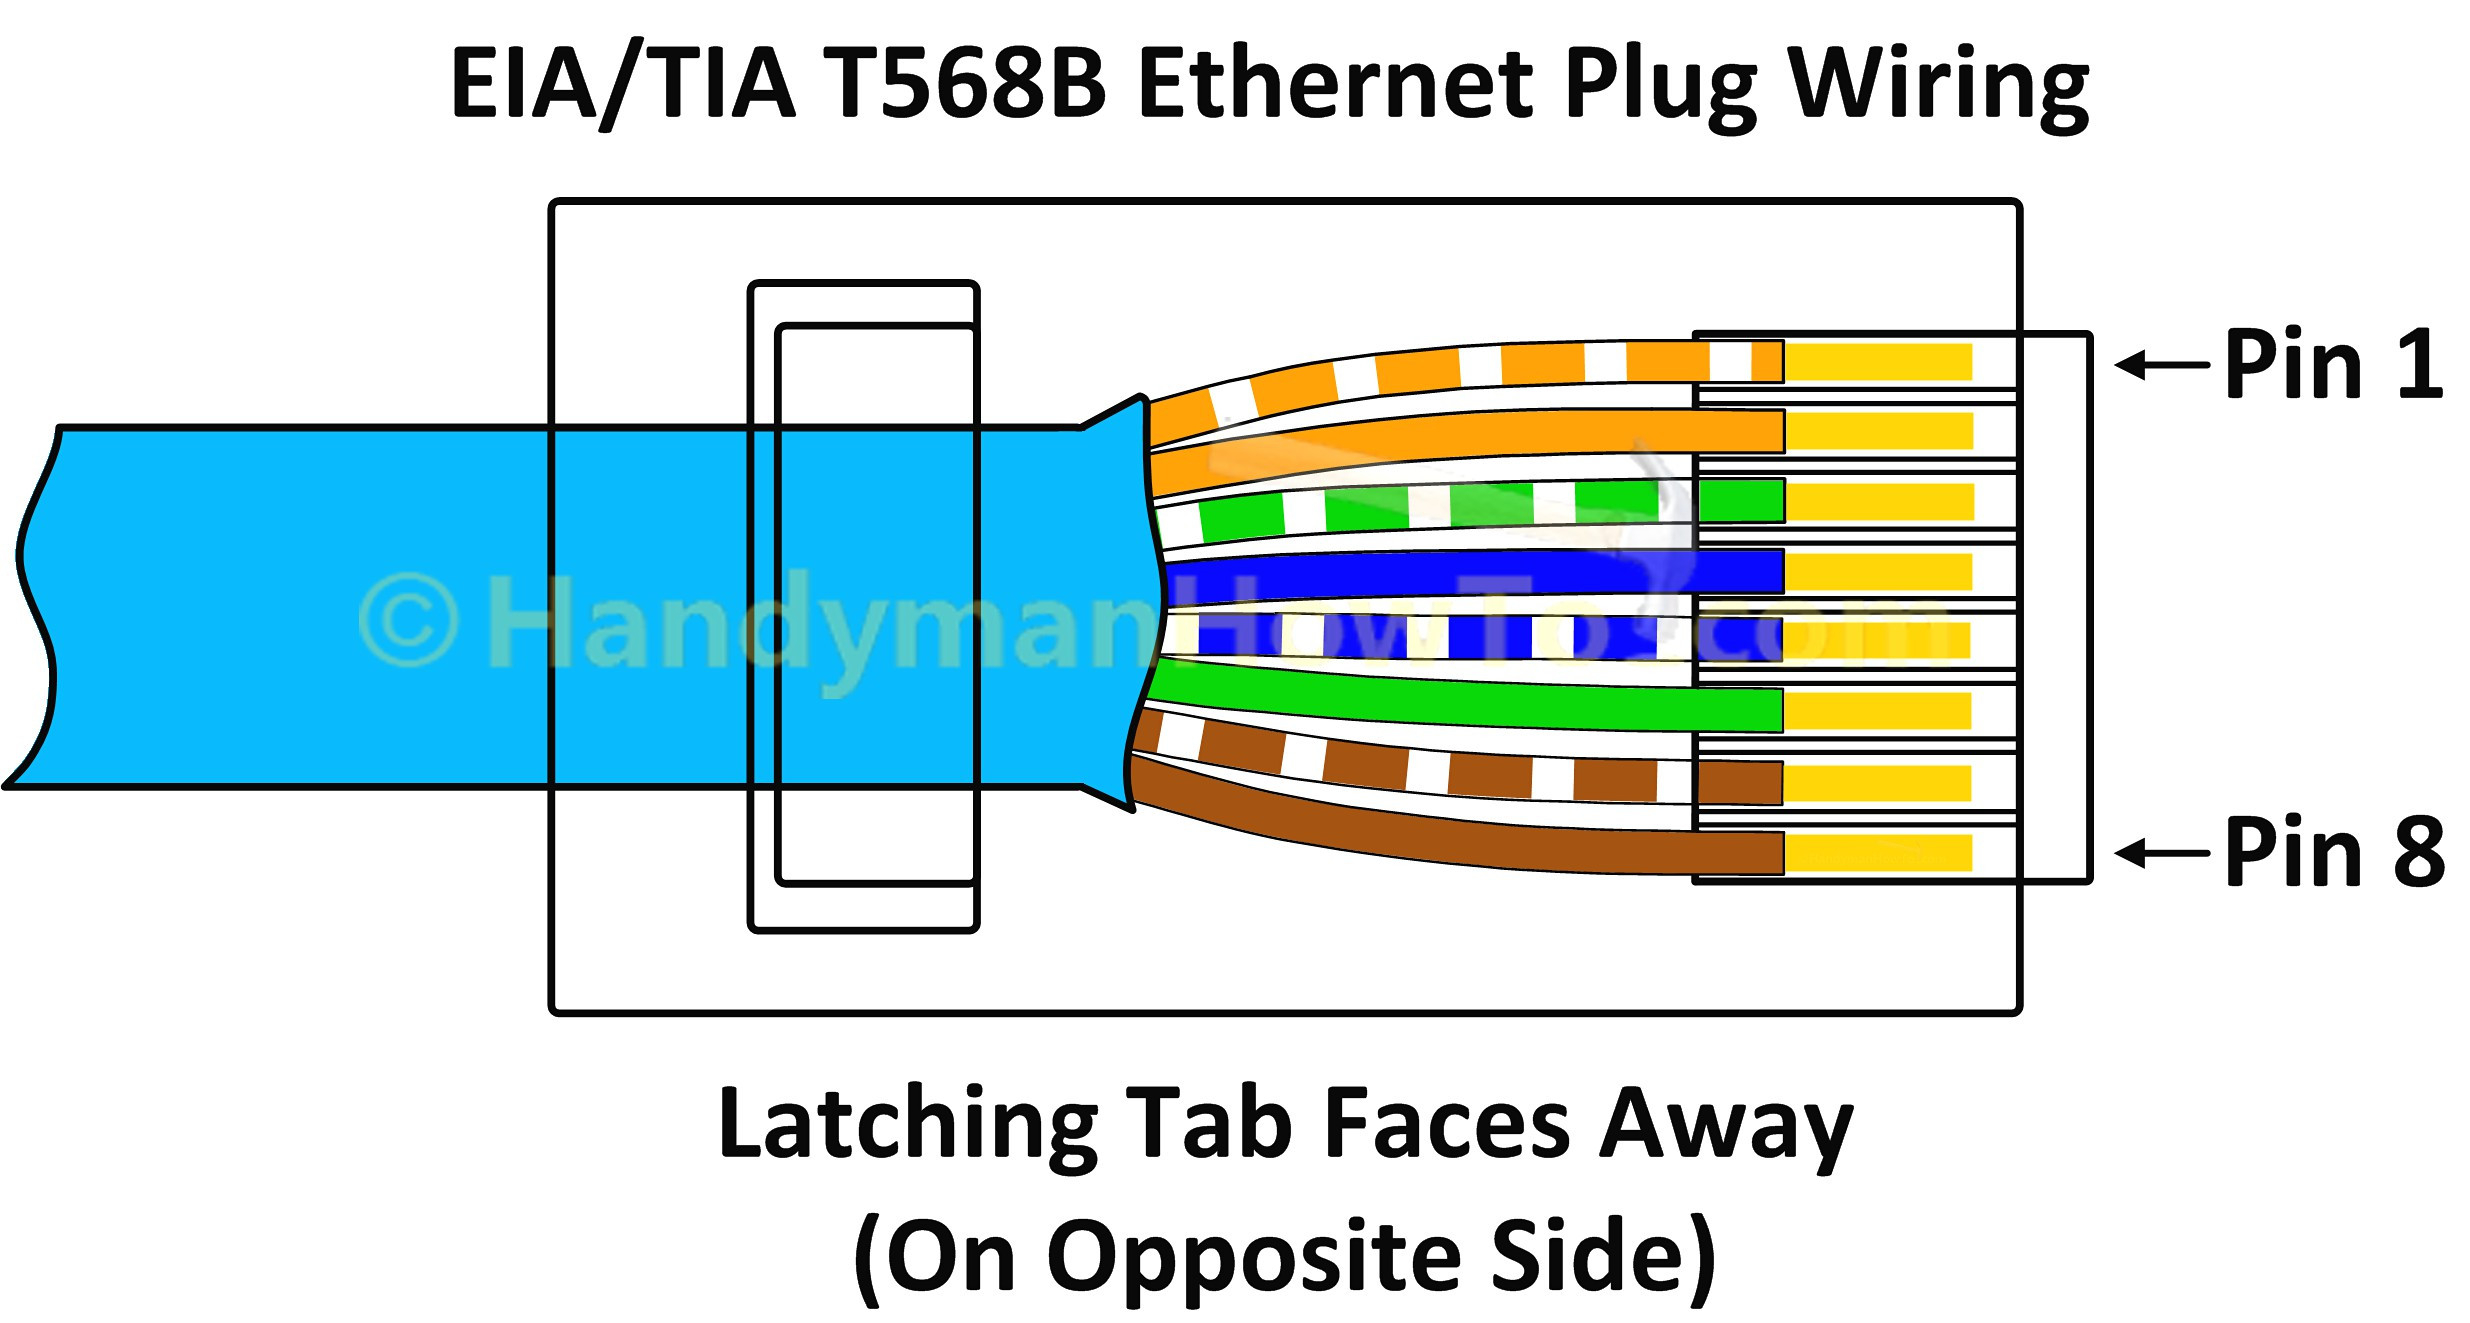 cat6 socket wiring diagram Collection-Cat6 Wall Plate Wiring Diagram Australia New Elegant Cat5e Wiring Diagram Diagram 1-f